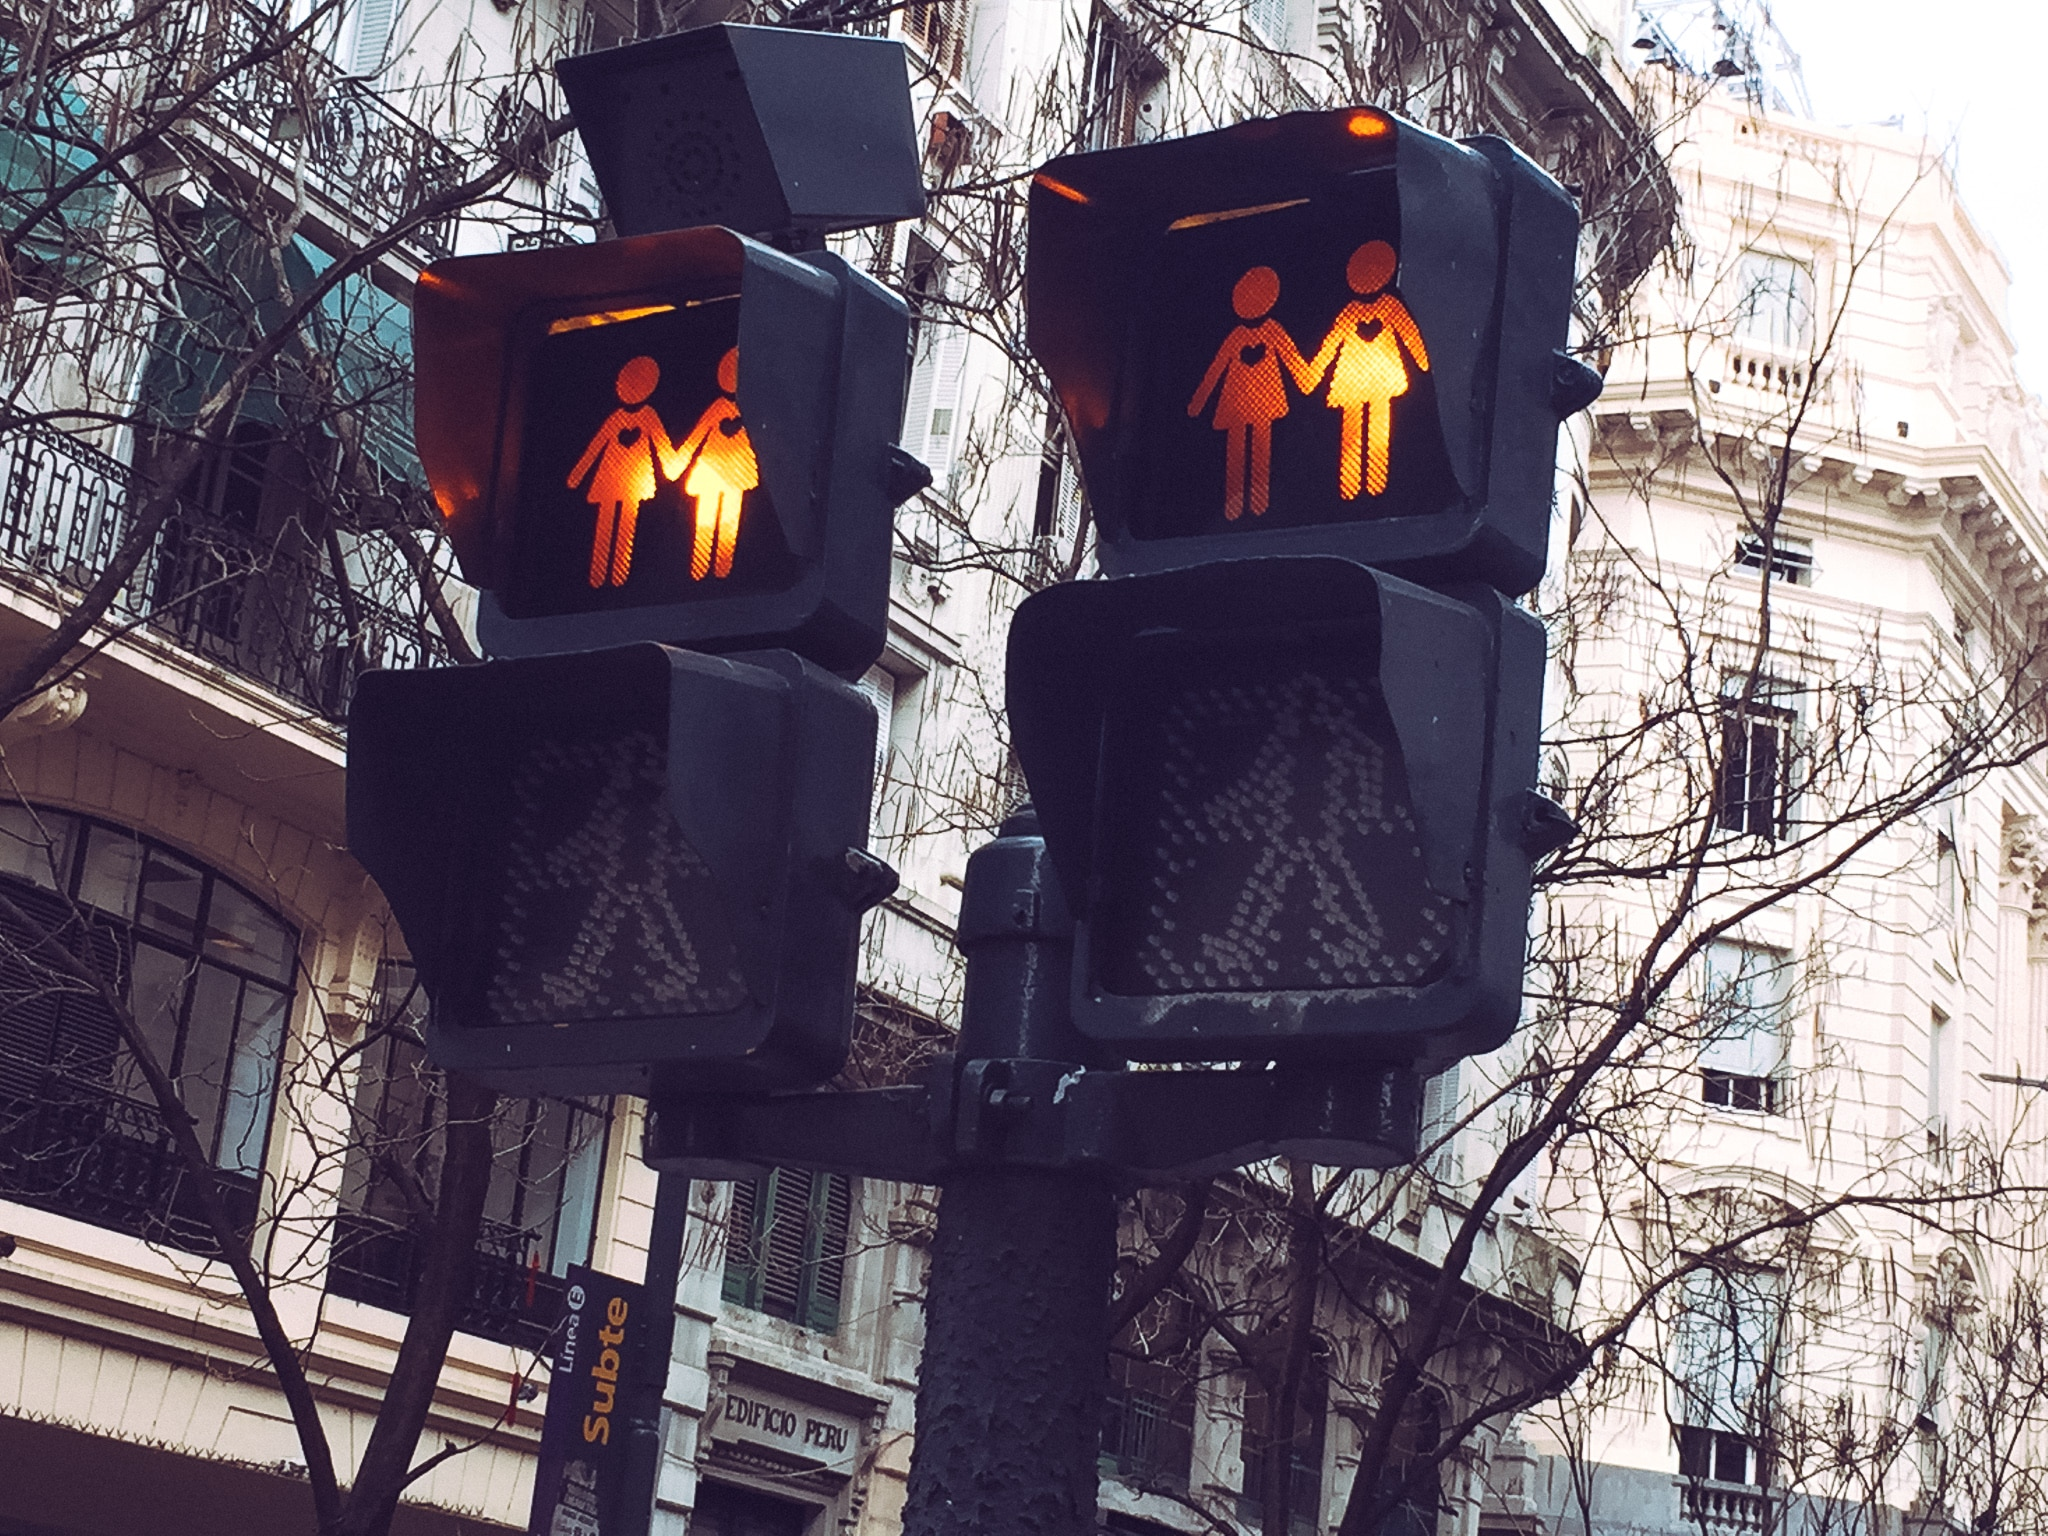 A stoplight with two same-gender couples lit in red.